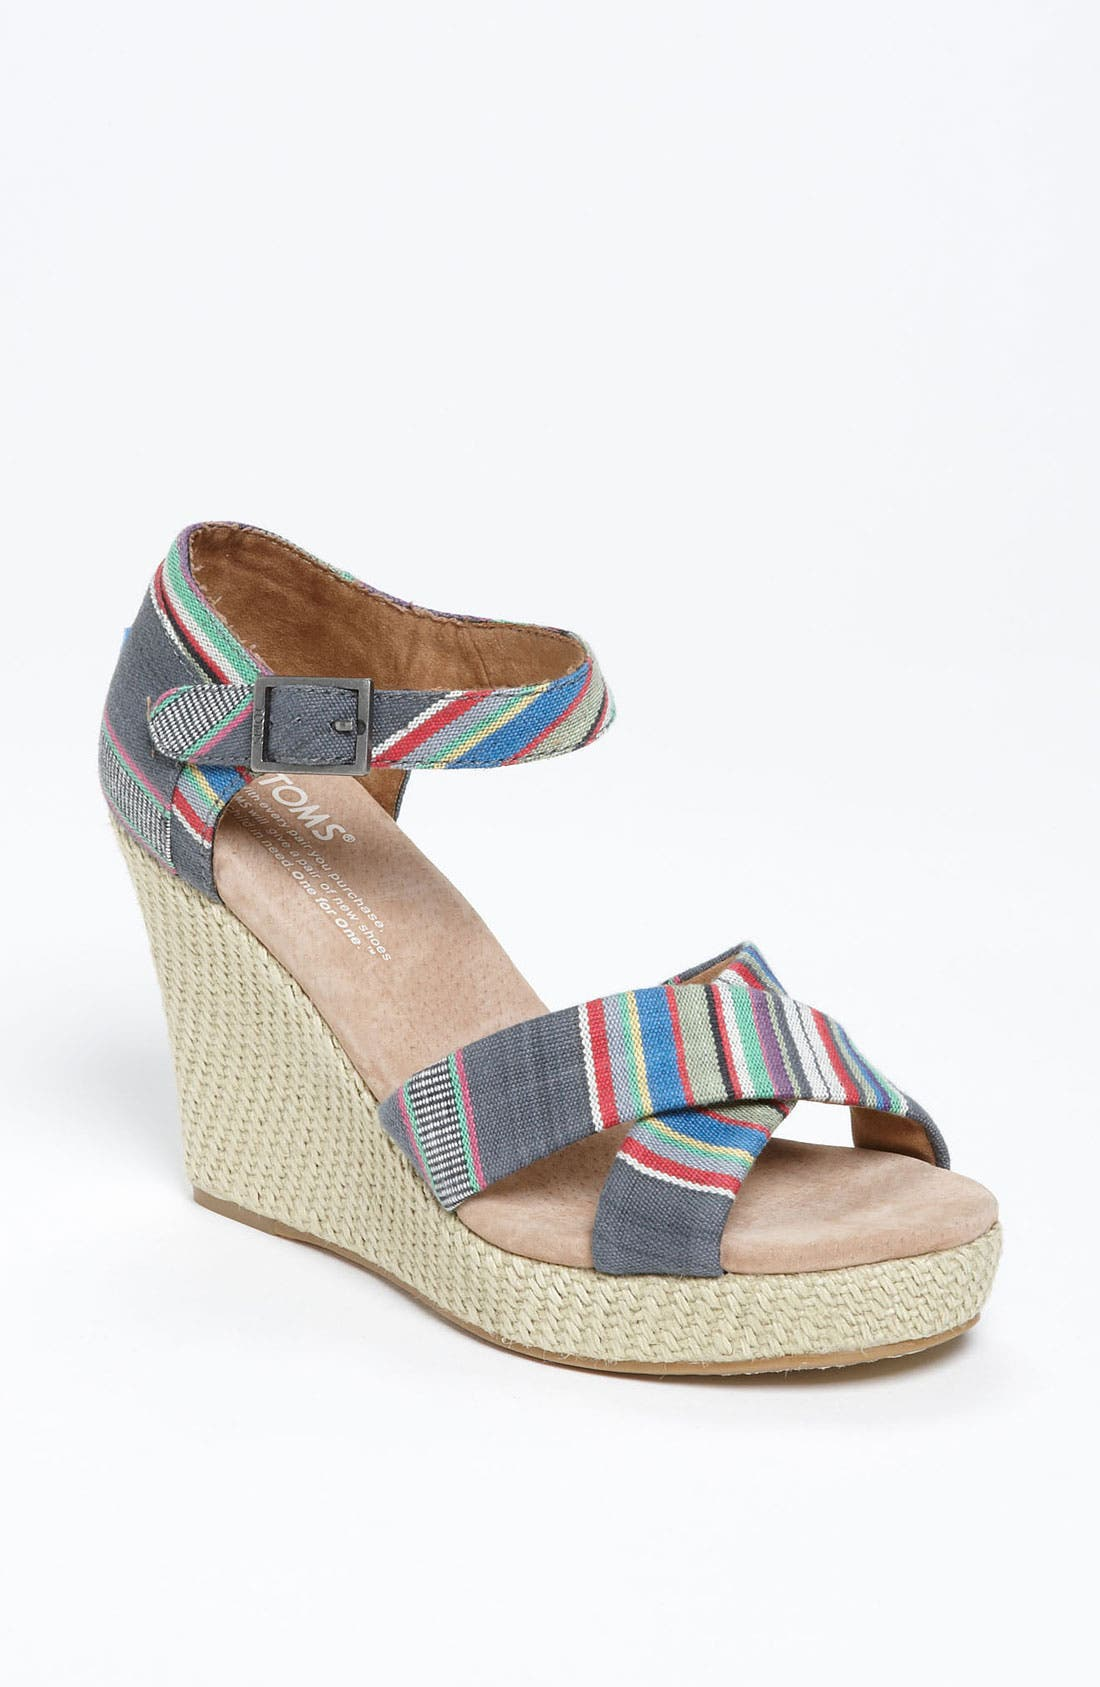 Alternate Image 1 Selected - TOMS Denim Stripe Wedge Sandal